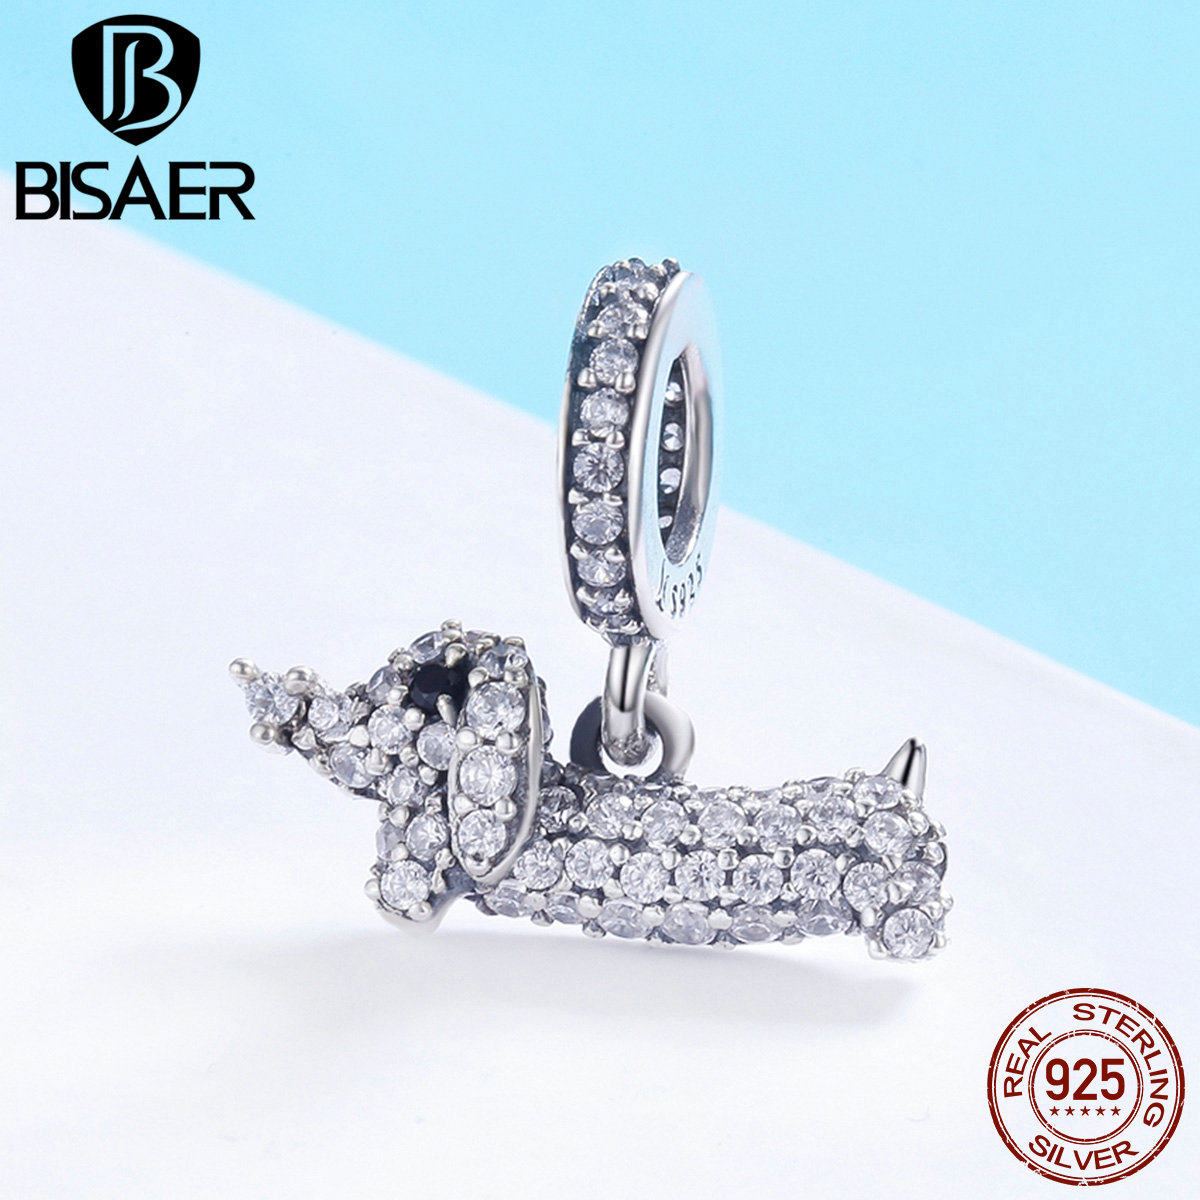 BISAER Charms 925 Sterling Silver Crystal Dachshund Charms CZ Dog Animal Pendant Beads Fit for Bracelets DIY Jewelry MakingBISAER Charms 925 Sterling Silver Crystal Dachshund Charms CZ Dog Animal Pendant Beads Fit for Bracelets DIY Jewelry Making